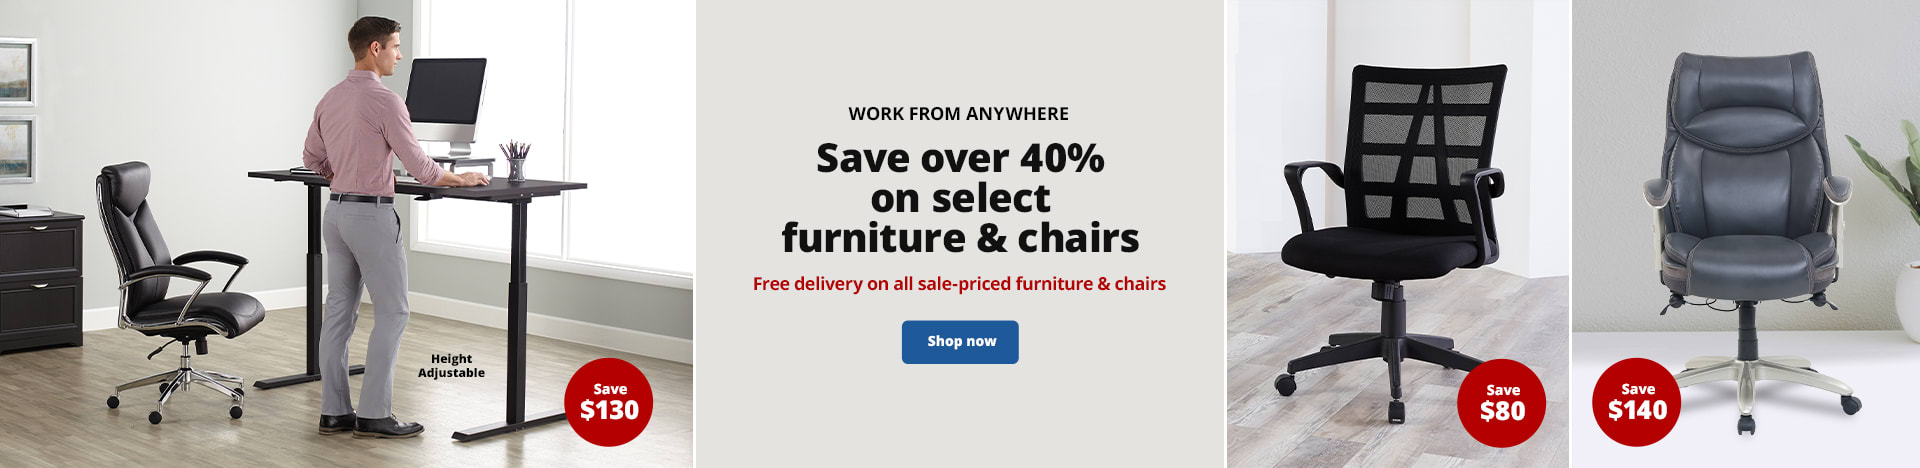 Work From Anywhere. Save over 40% on select furniture & chairs. Free delivery on all sale-priced furniture & chairs